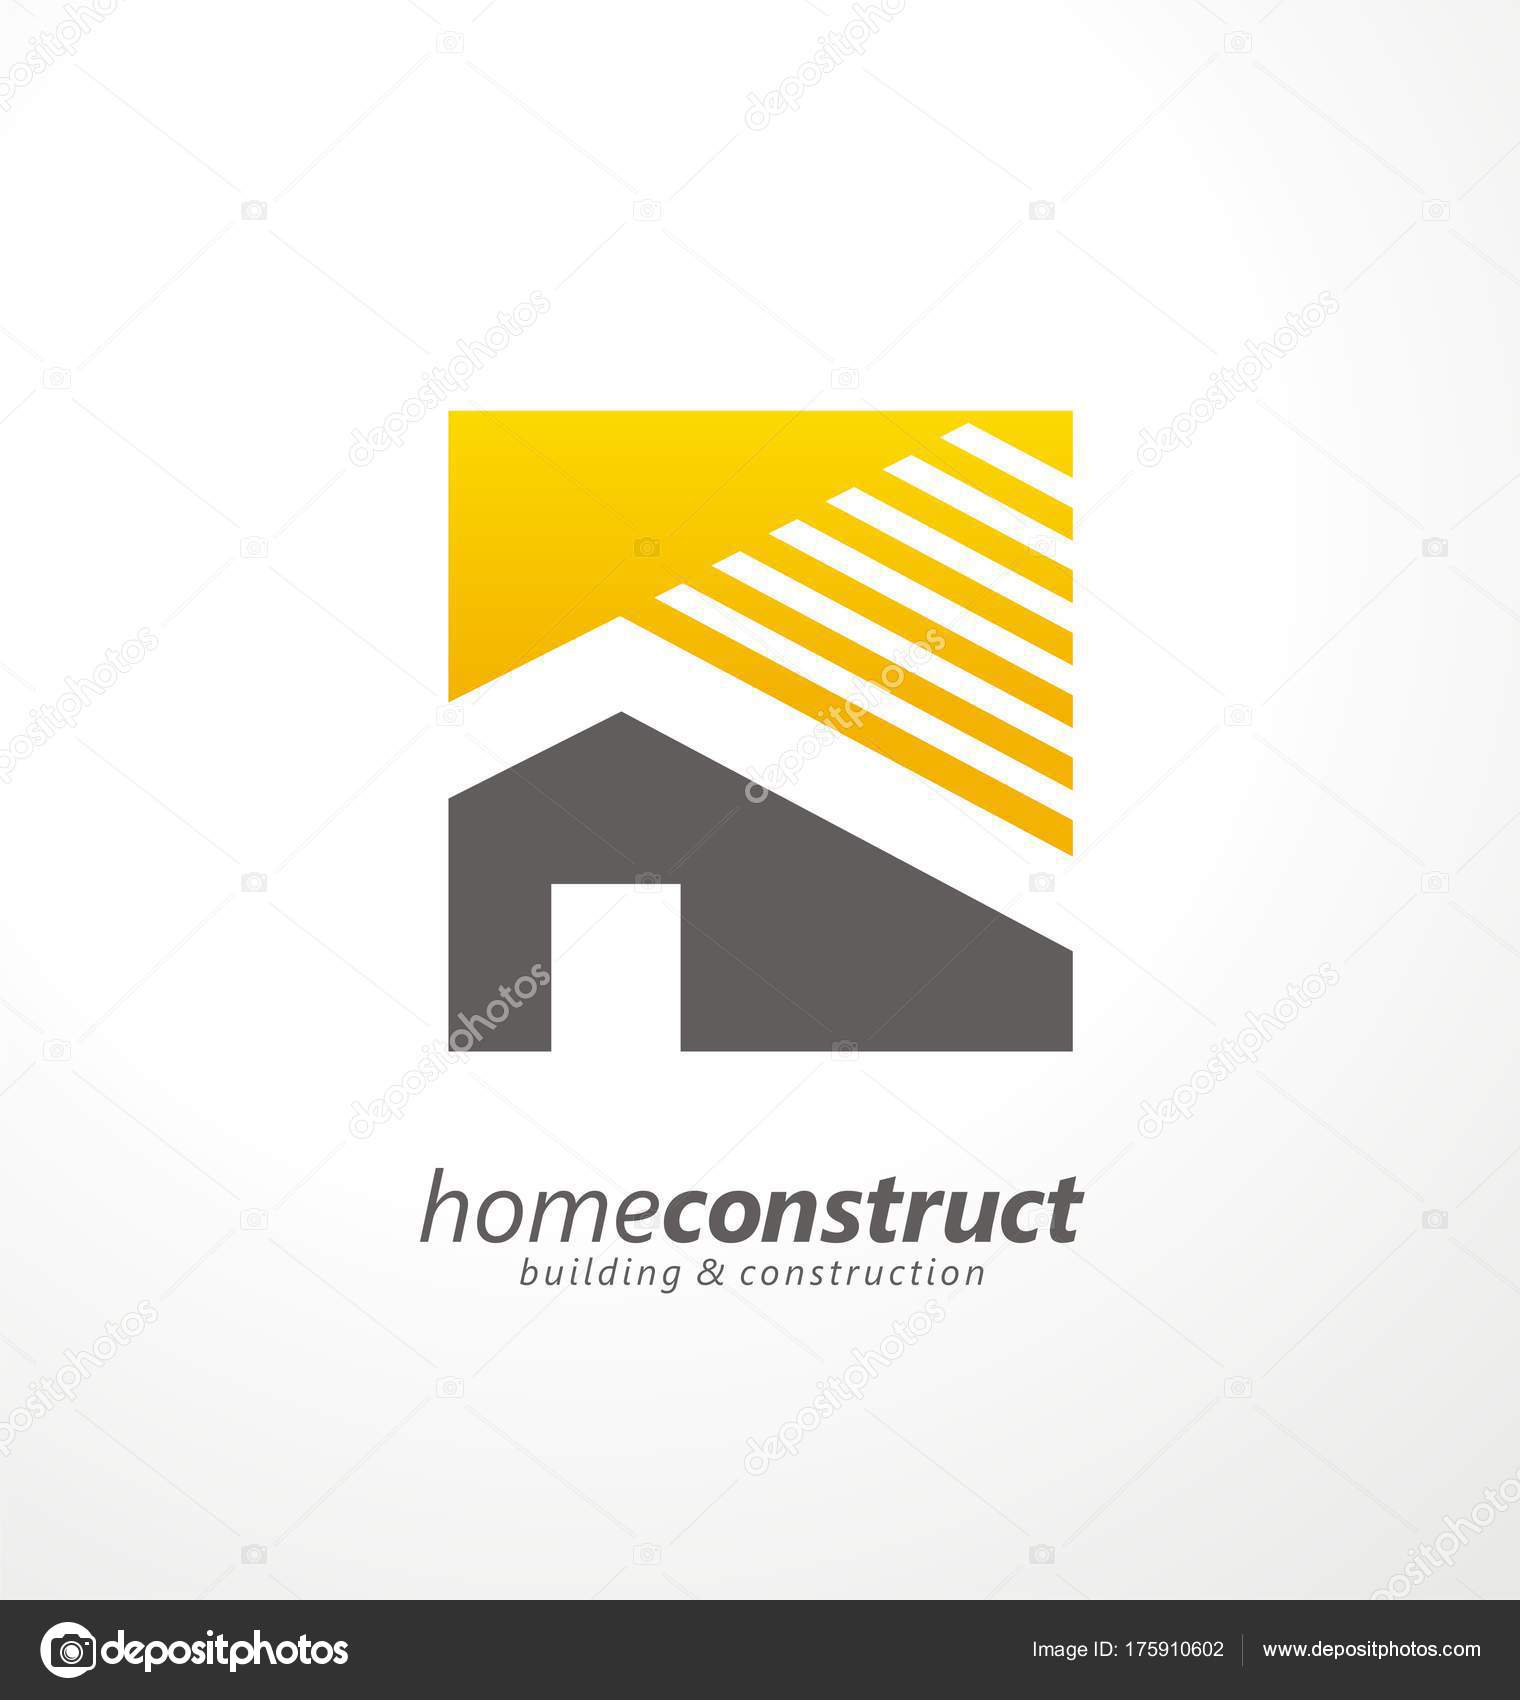 Home construction vector logo design logo symbol icon real estates home construction vector logo design logo symbol icon real estates stock vector biocorpaavc Image collections